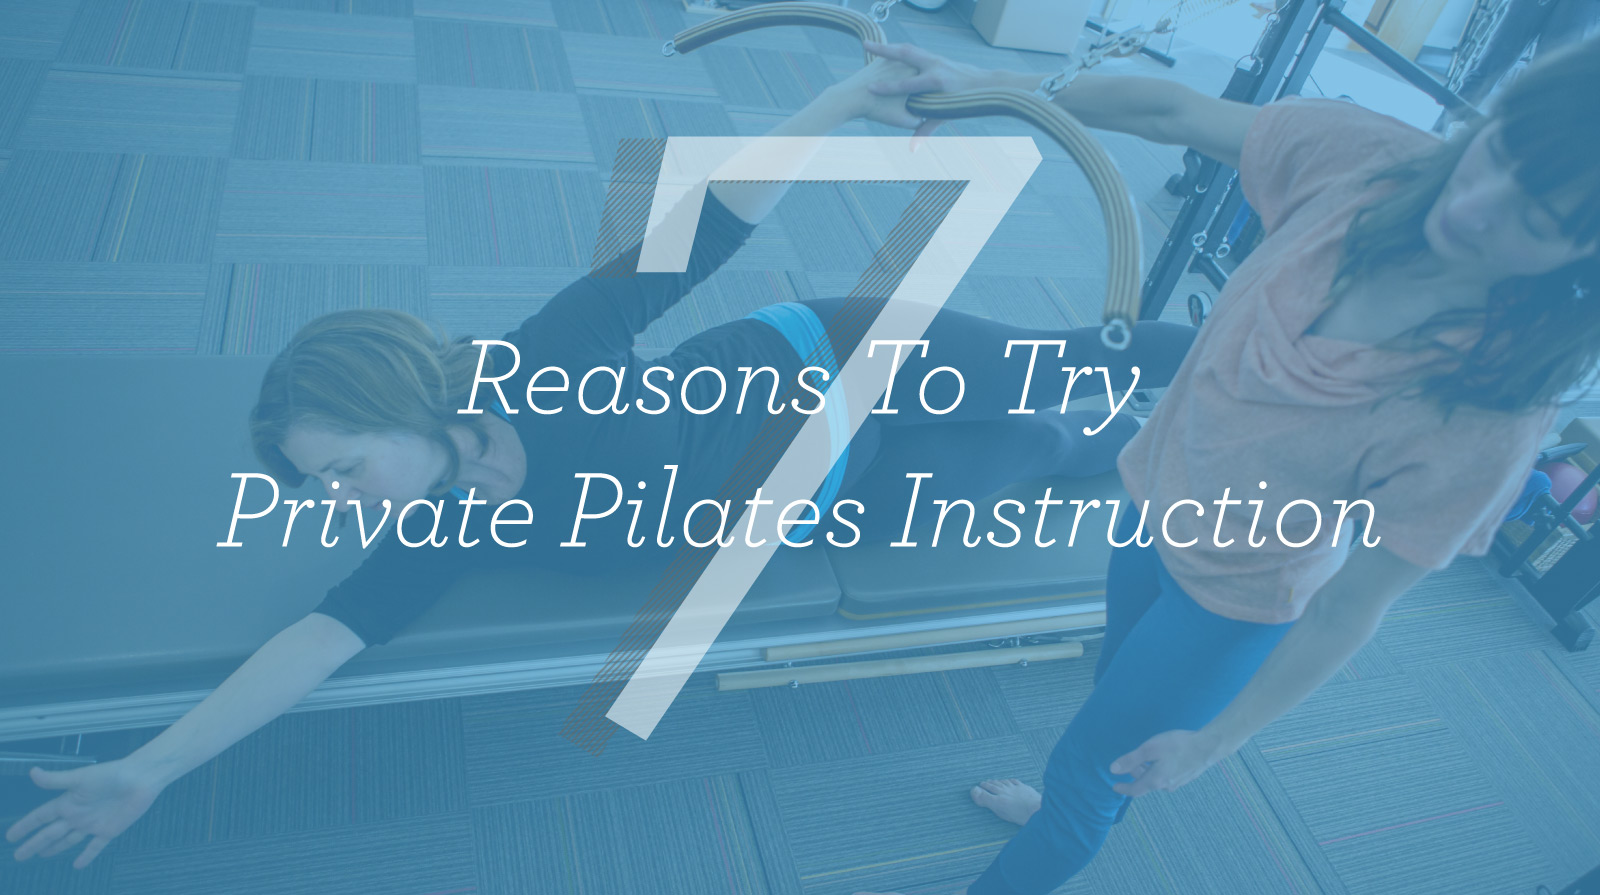 Picture of pilates instructor and student overlaid by words seven reasons to try private pilates instruction